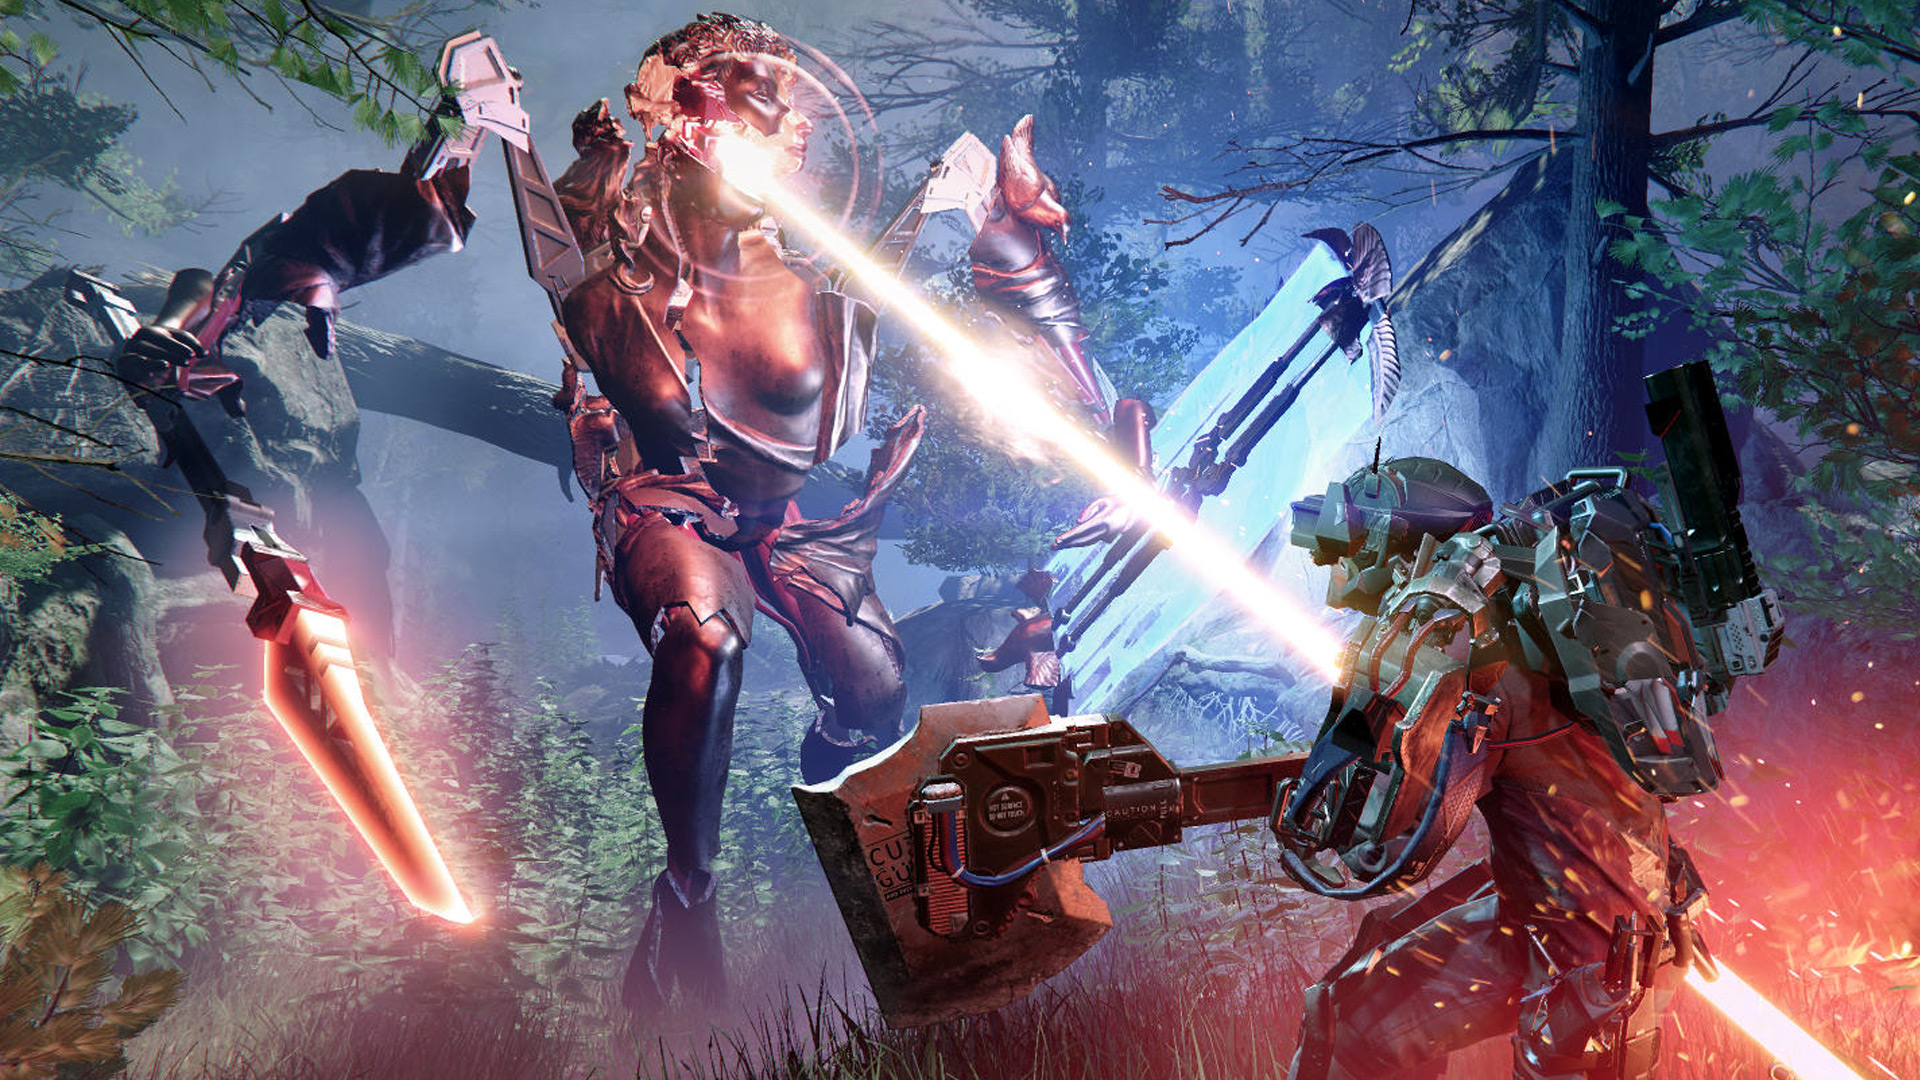 E3 2018: The Surge 2 Promises More Dismemberment Memory Making